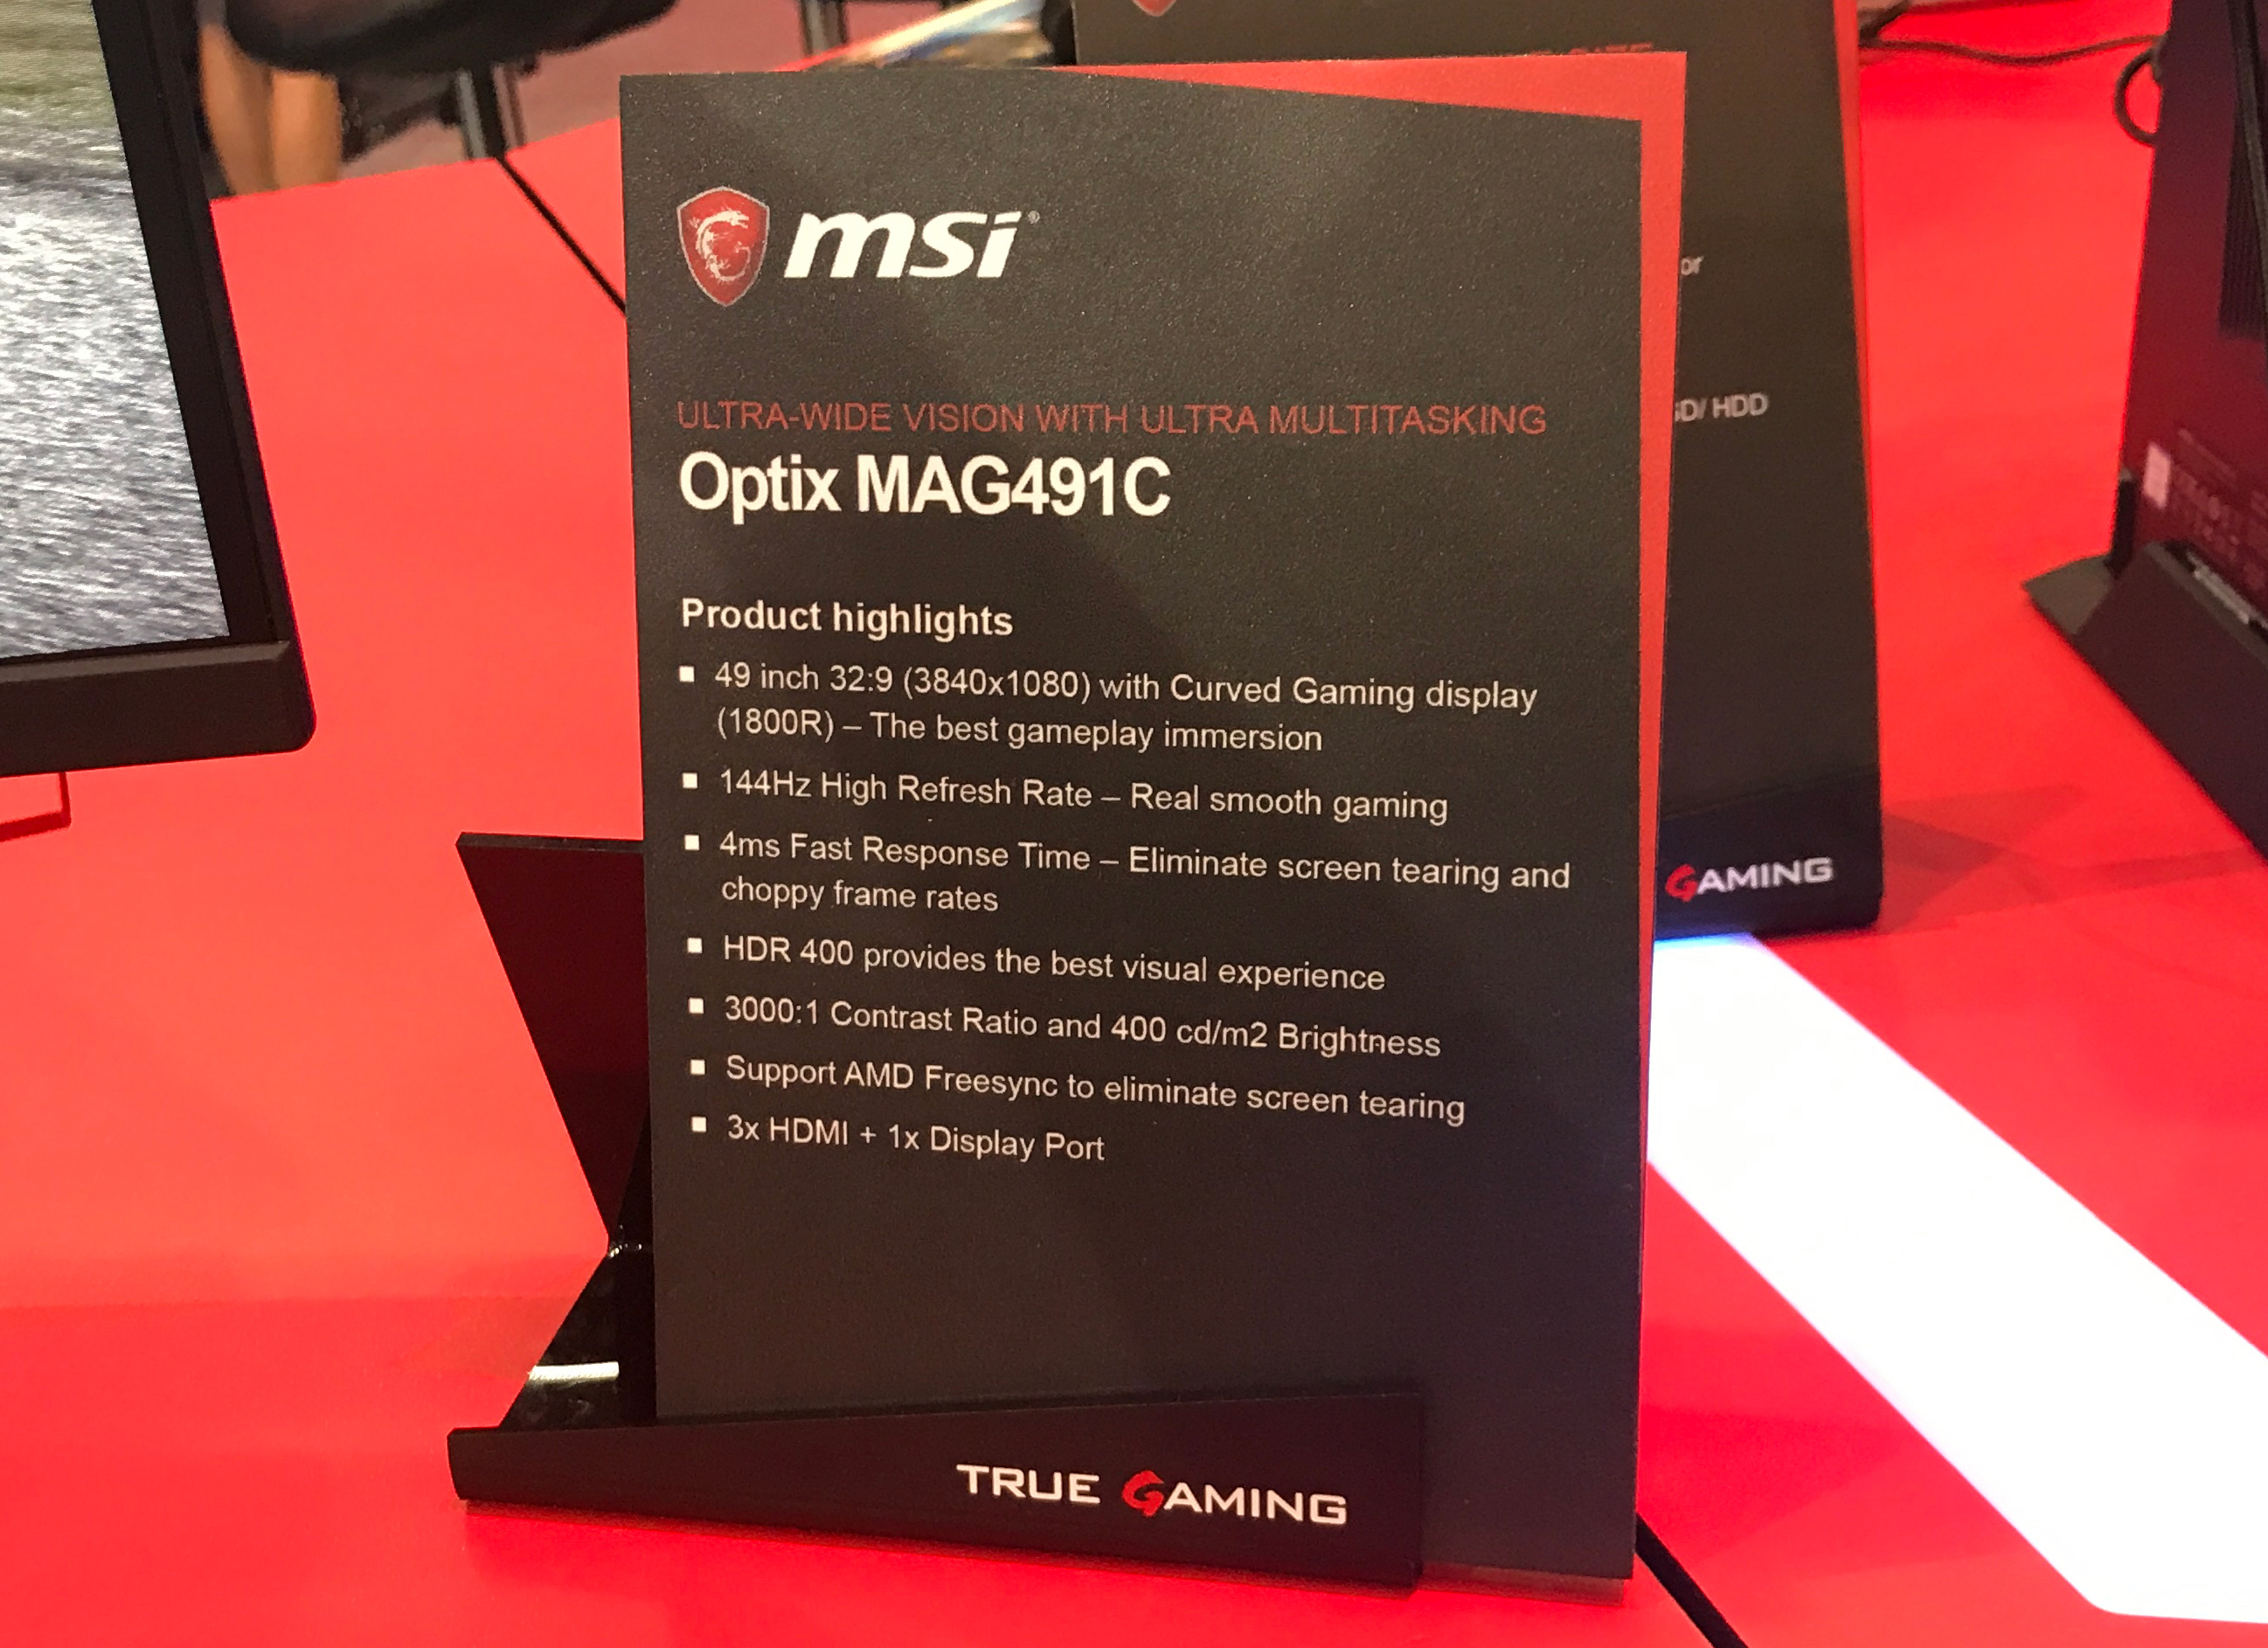 MSI Optix MAG491C Hands-On: A 49-Inch 32:9 LCD with FreeSync